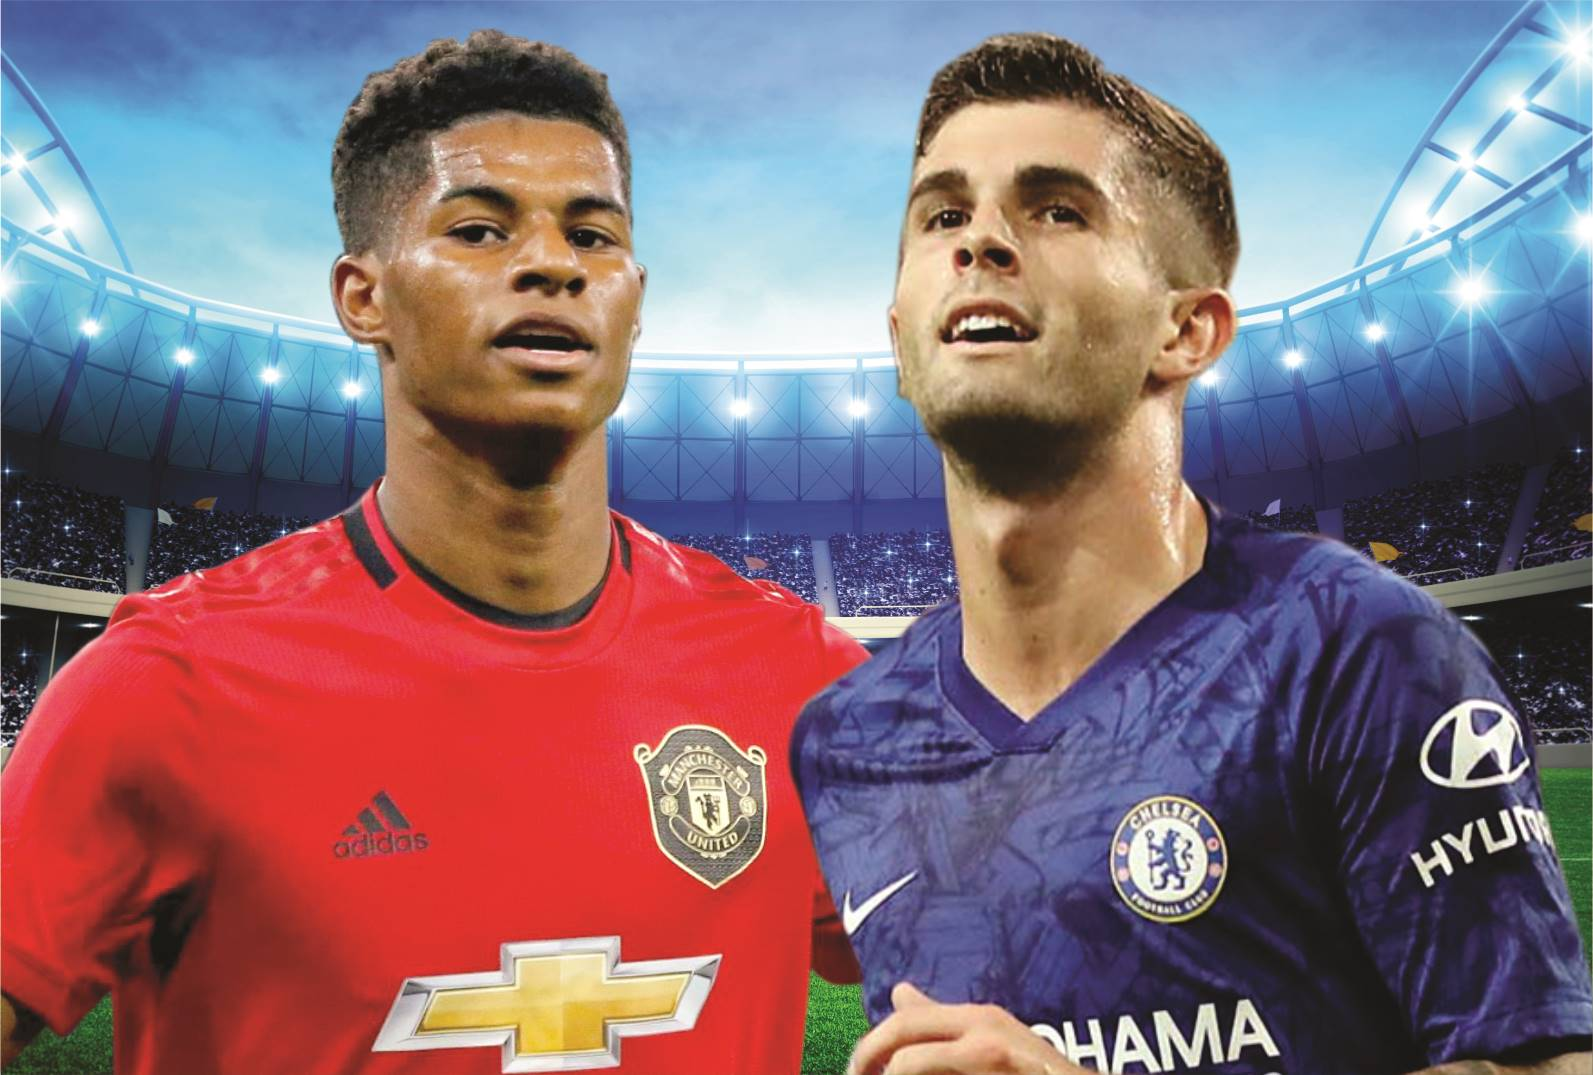 Manchester United will host Chelsea